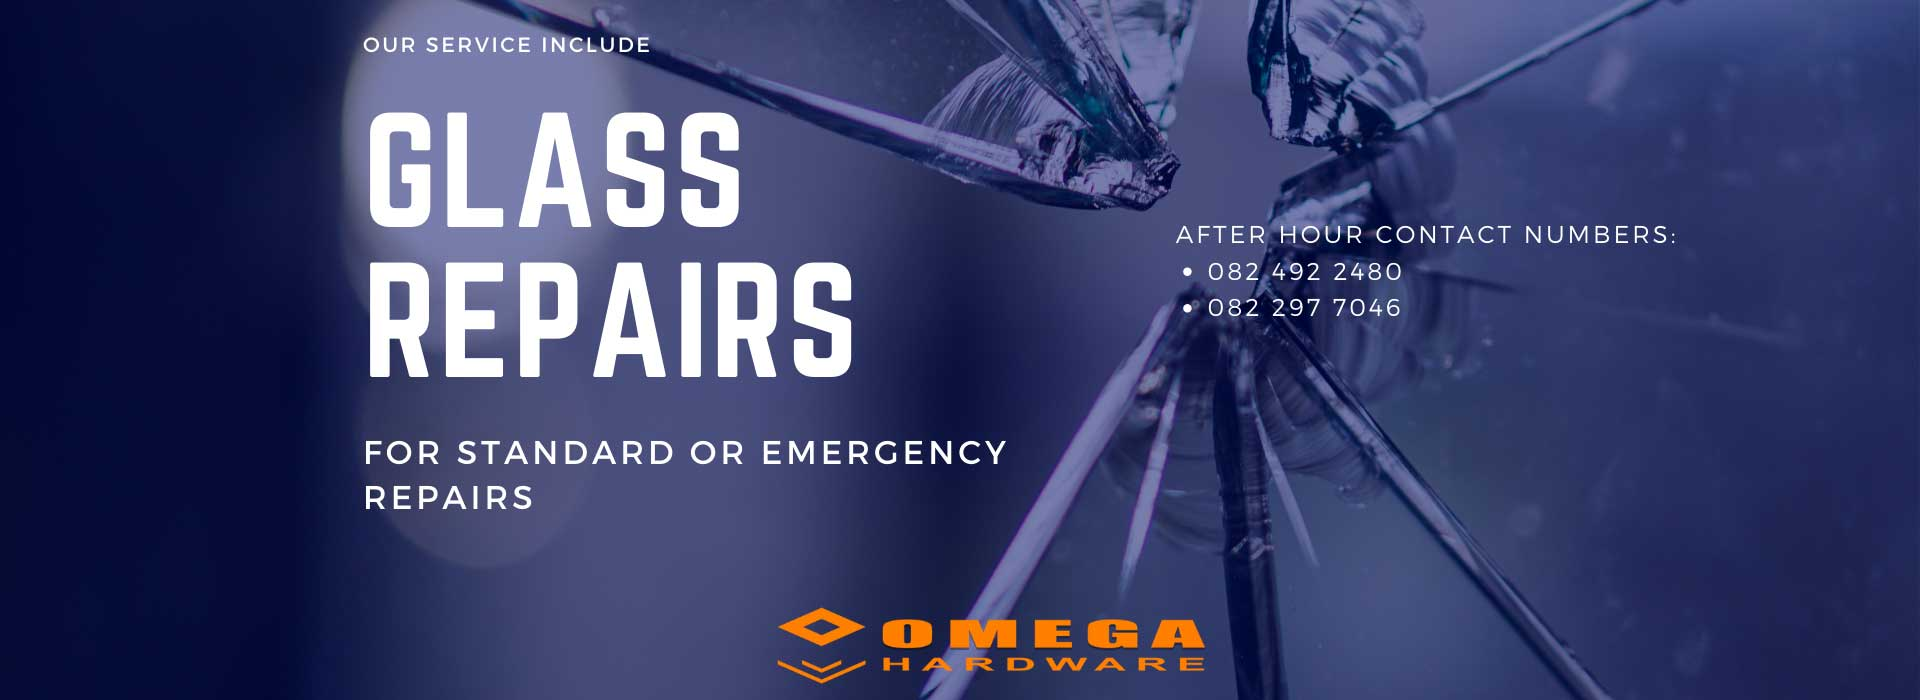 emergency glass repairs Gansbaai, glass installation, installers of mirrors, bevelled mirror supplier, safety glass repairs, safety glass installer, Omega Gansbaai, Omega Hardware